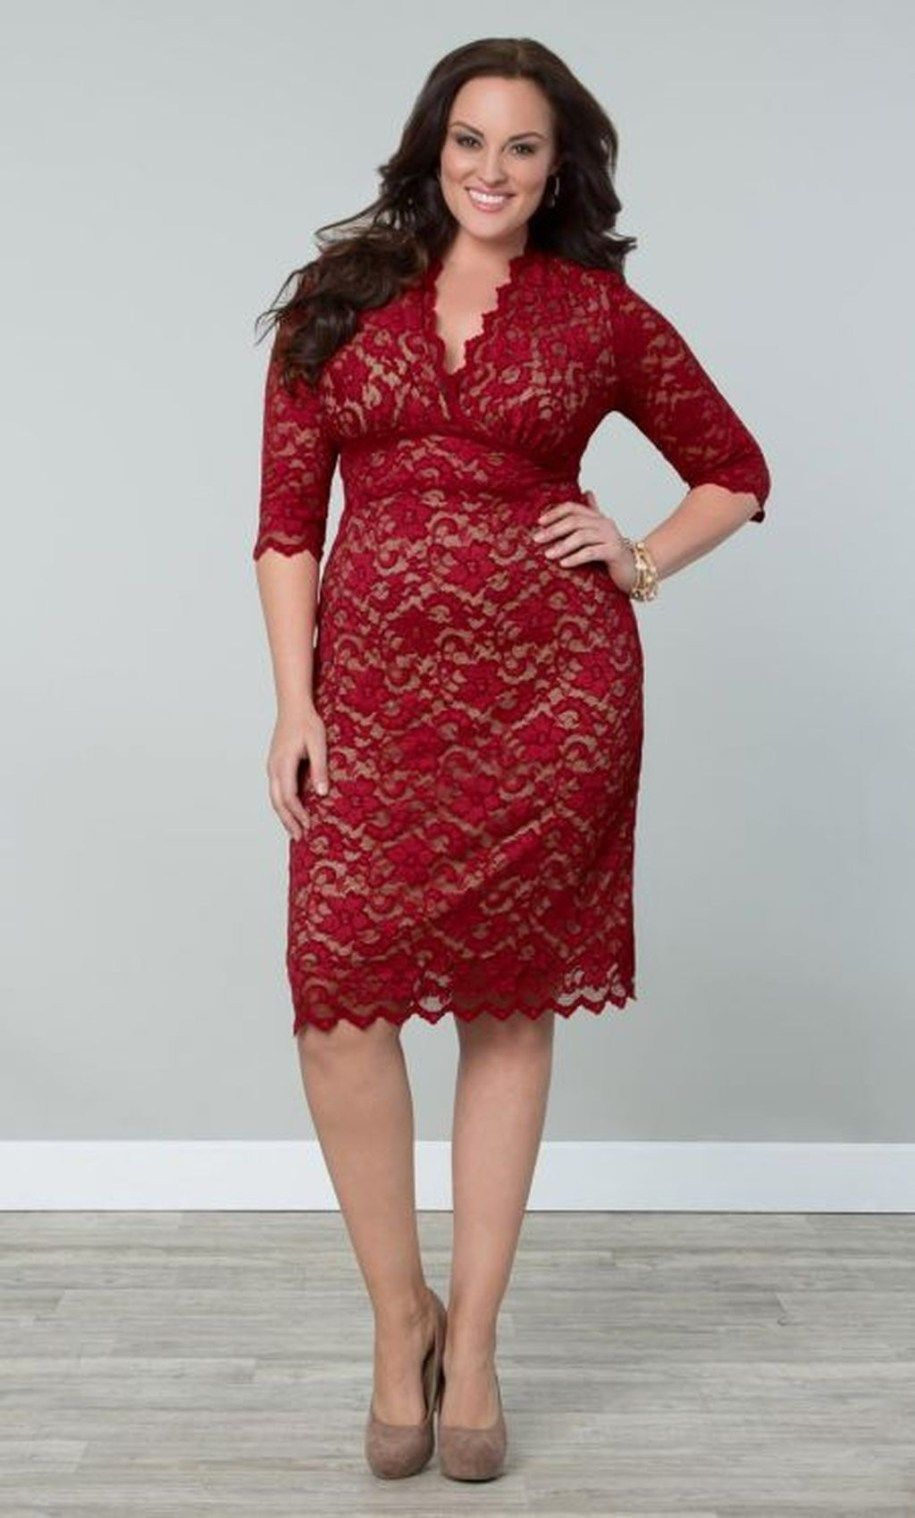 Adorable Plus Size Dress Ideas For Valentines Day 25